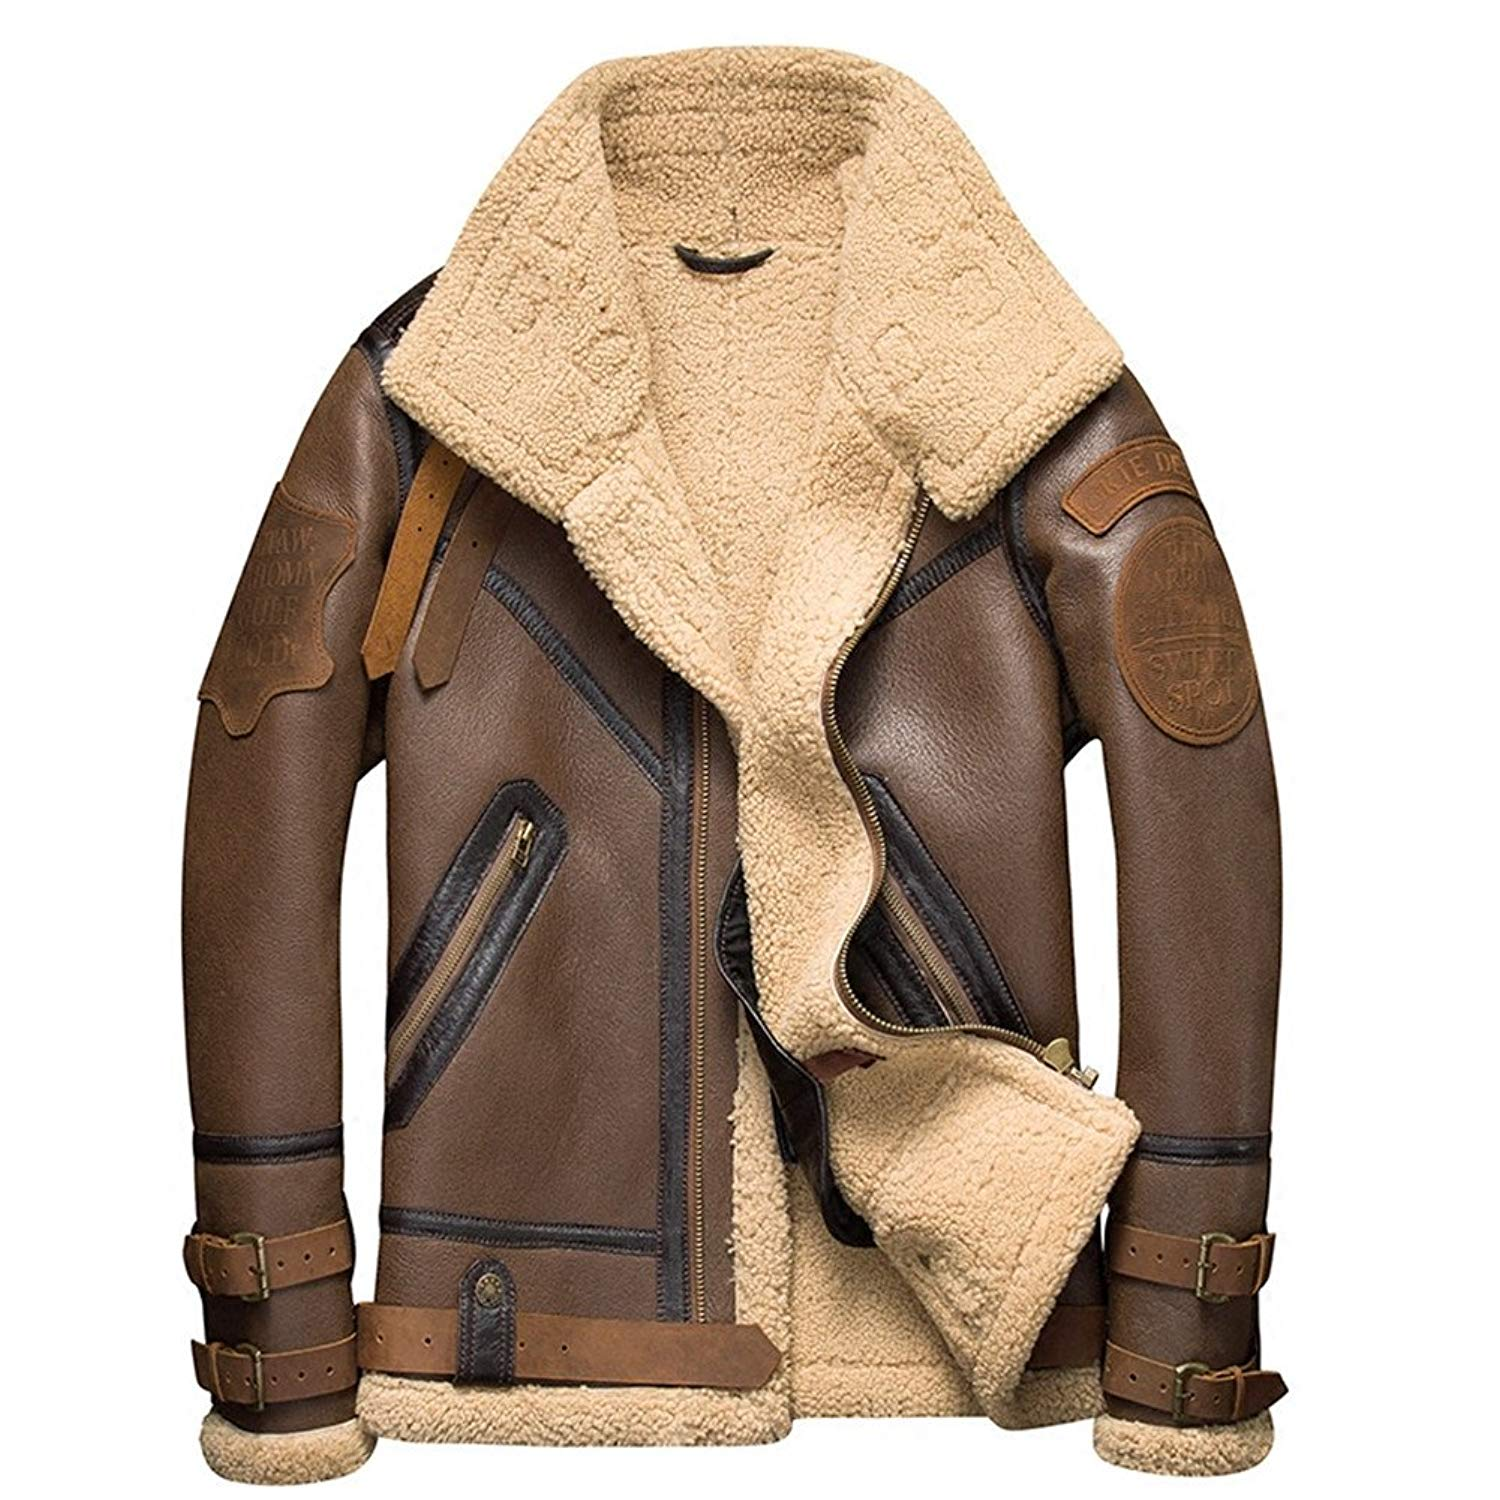 e826101a0bc55 Get Quotations · Denny Dora B3 Shearling Leather Jacket Mens Shearling Coat  Crack Texture Pilot Leather Jacket